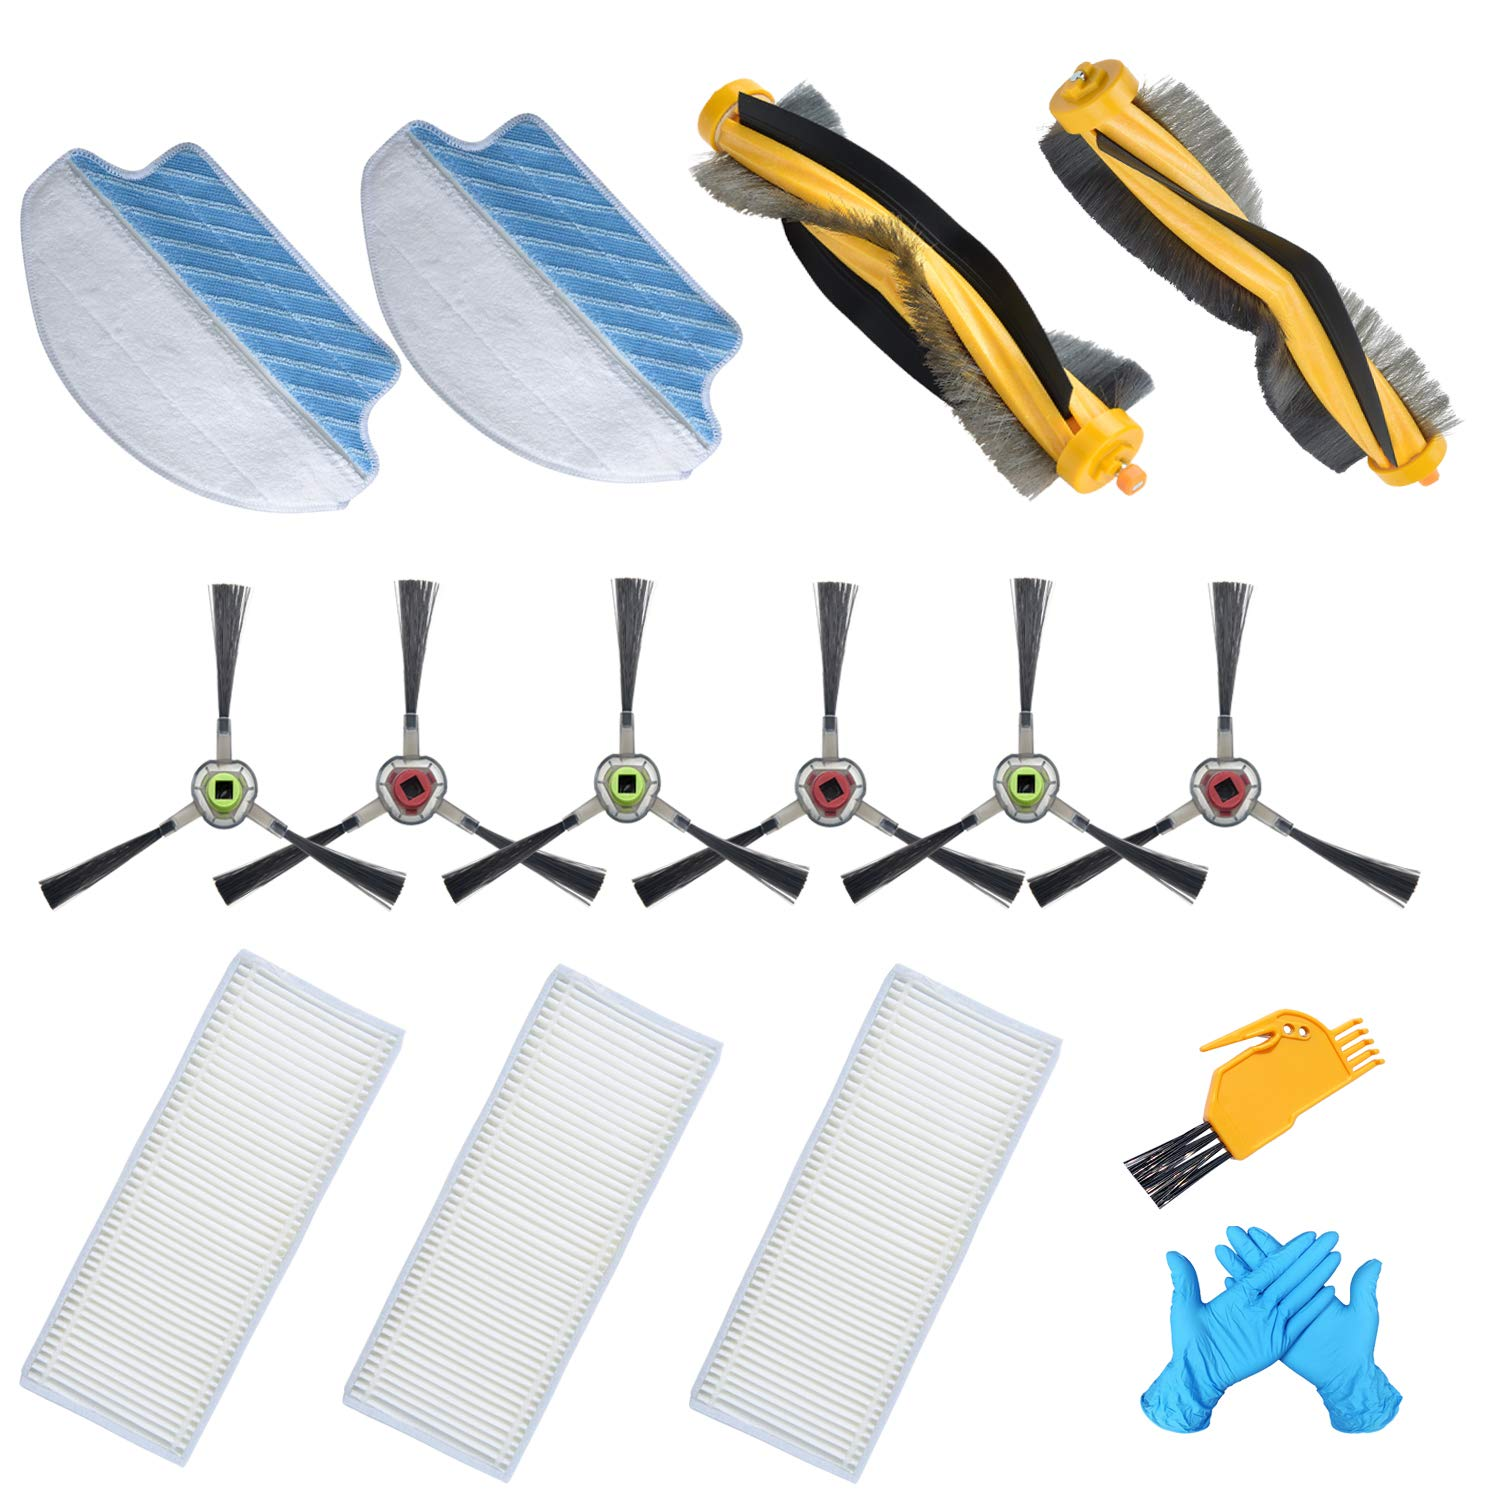 Joybros Replacement Parts:14 pcs of Air Filter Roller Brush Mopping Cloths Compatible for Ecovacs Accessories Deebot DR95-KTA R95 R96 R97 Vacuum Cleaner Replenishment Kit